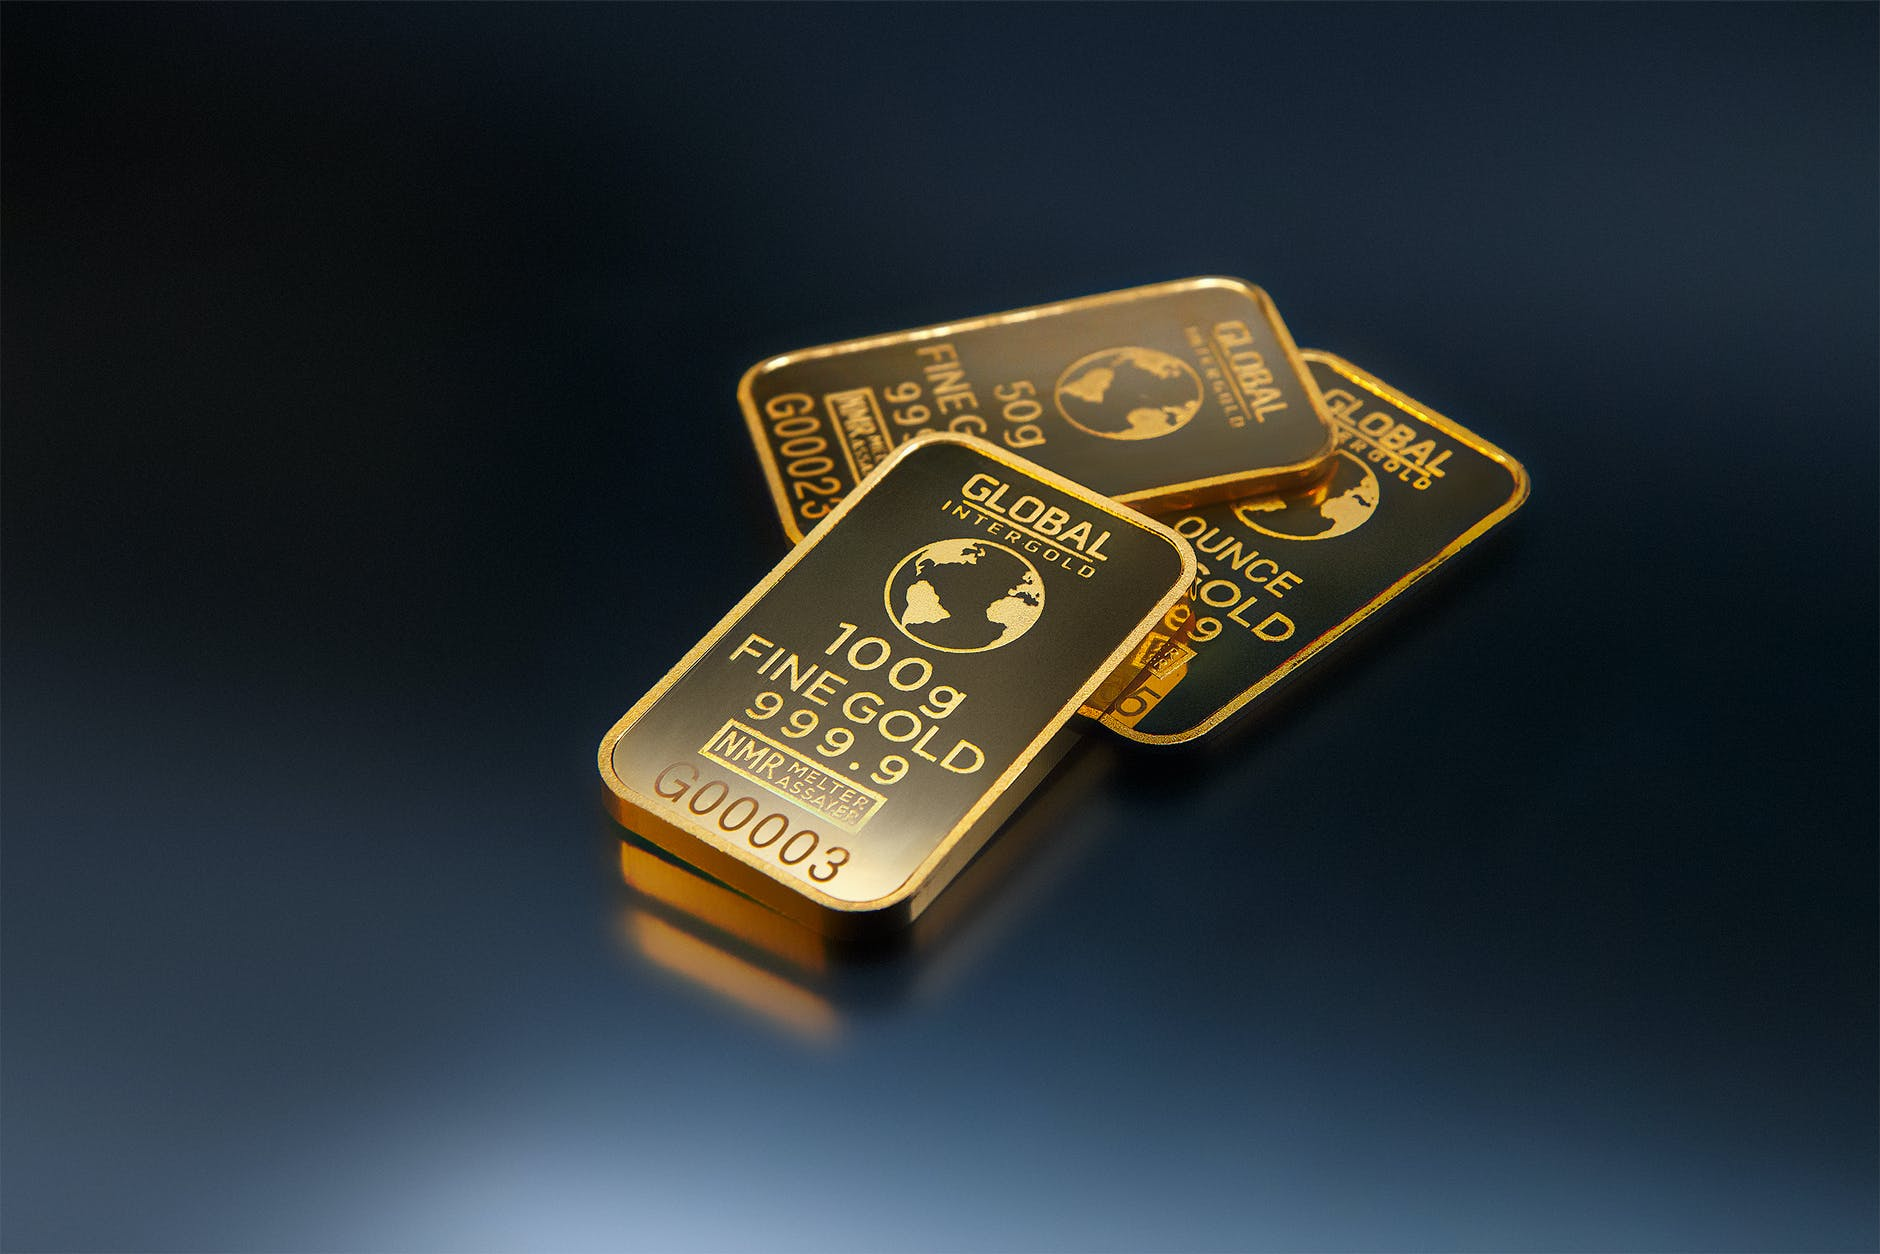 New Found Gold (NFGFF/NFGC) Company in Canada on the rise